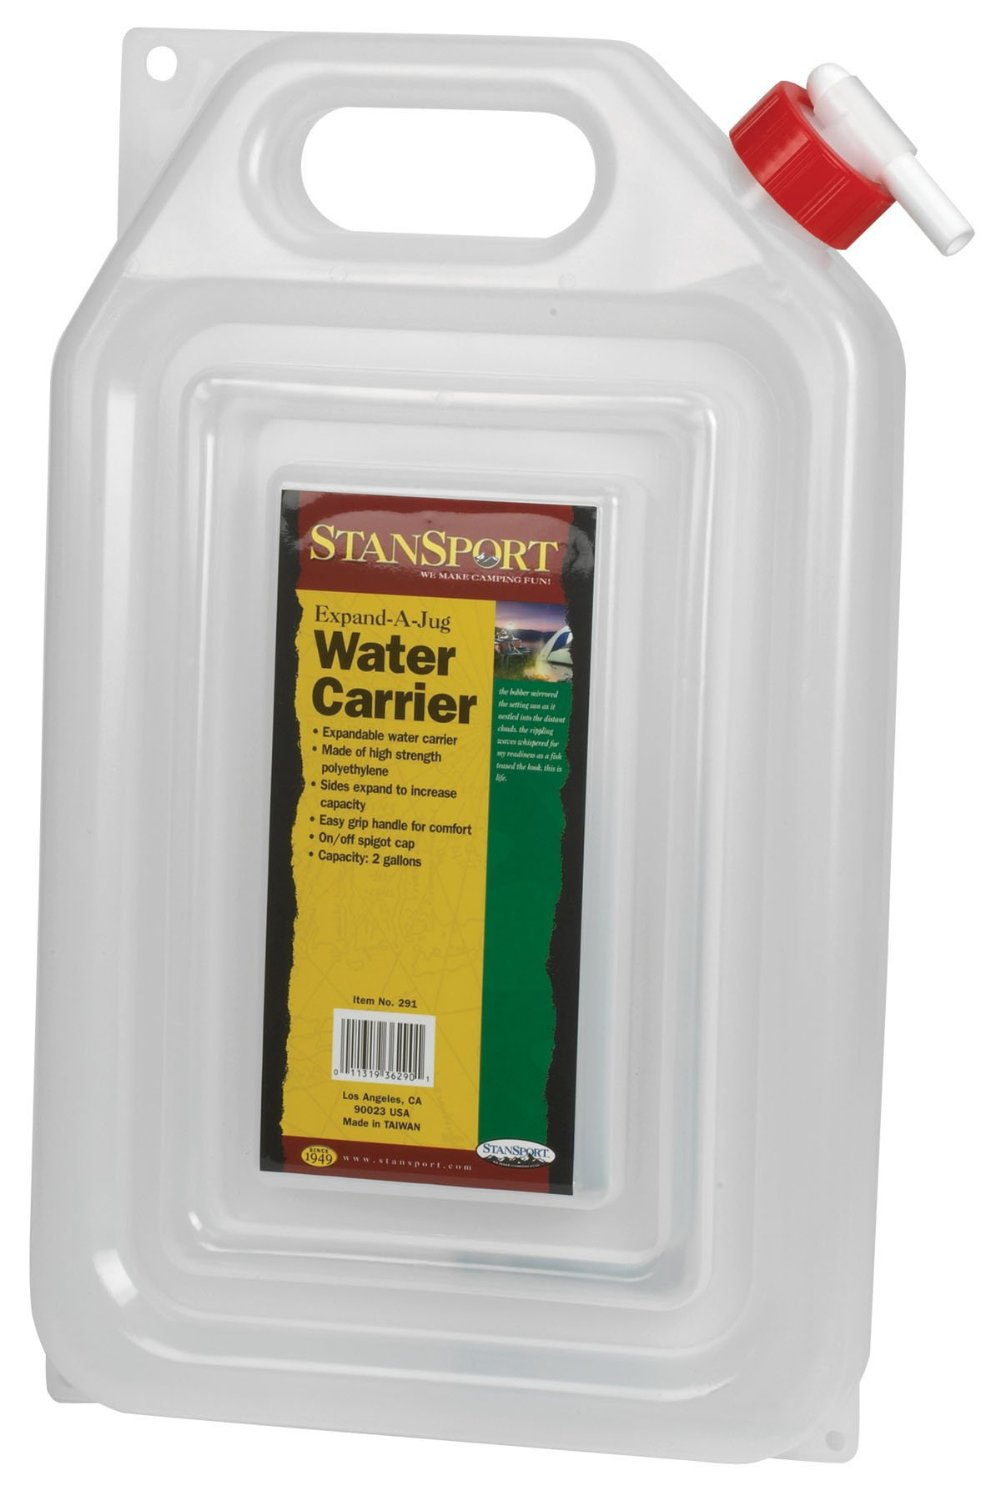 Stansport Outdoor 291 2-Gallon Expand-A-Jug Water Carrier [8mm] [Lawn & Patio]